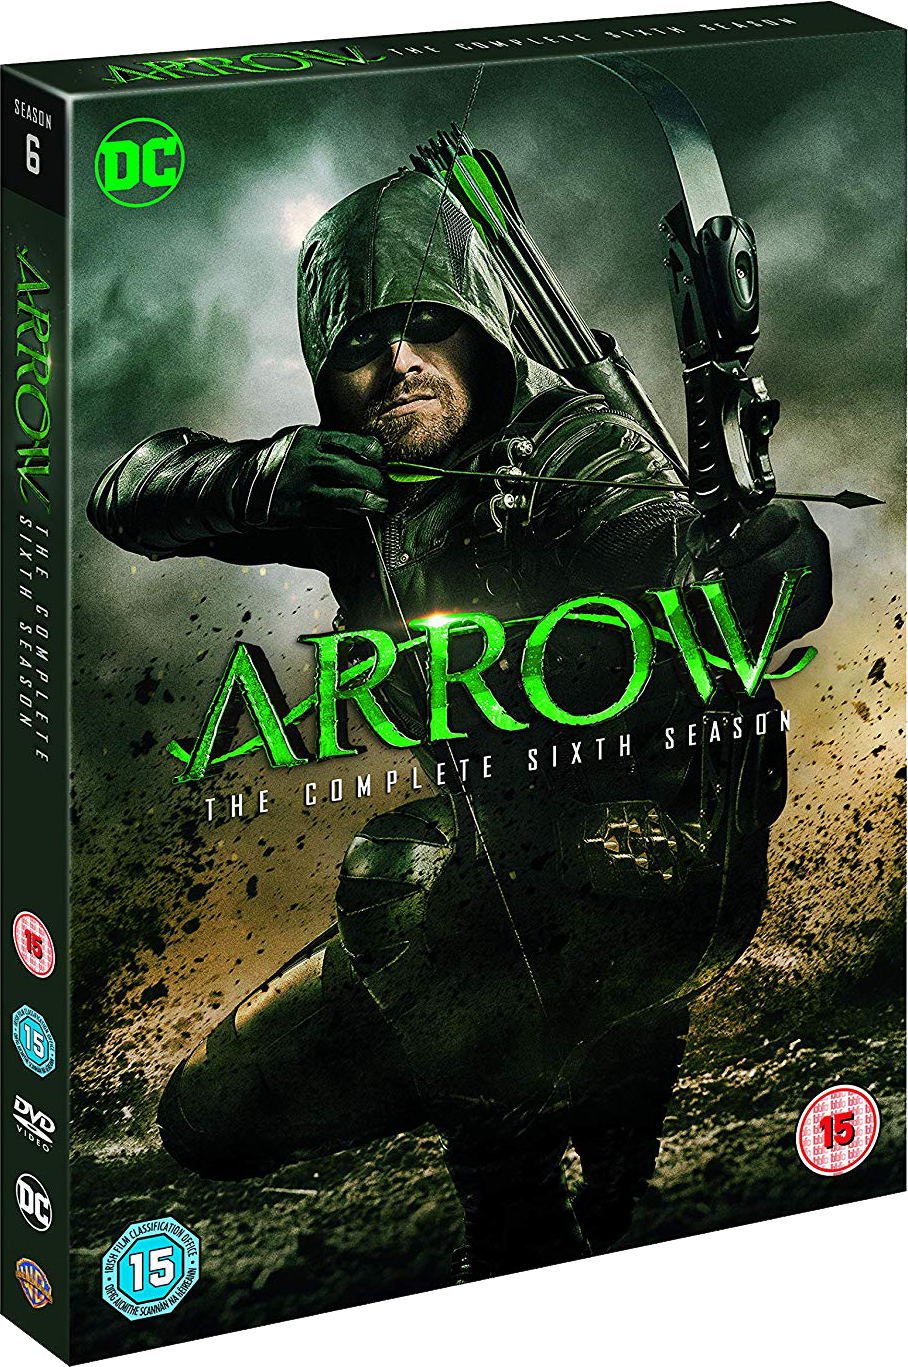 Arrow - The Complete Sixth Season region 2 cover.png